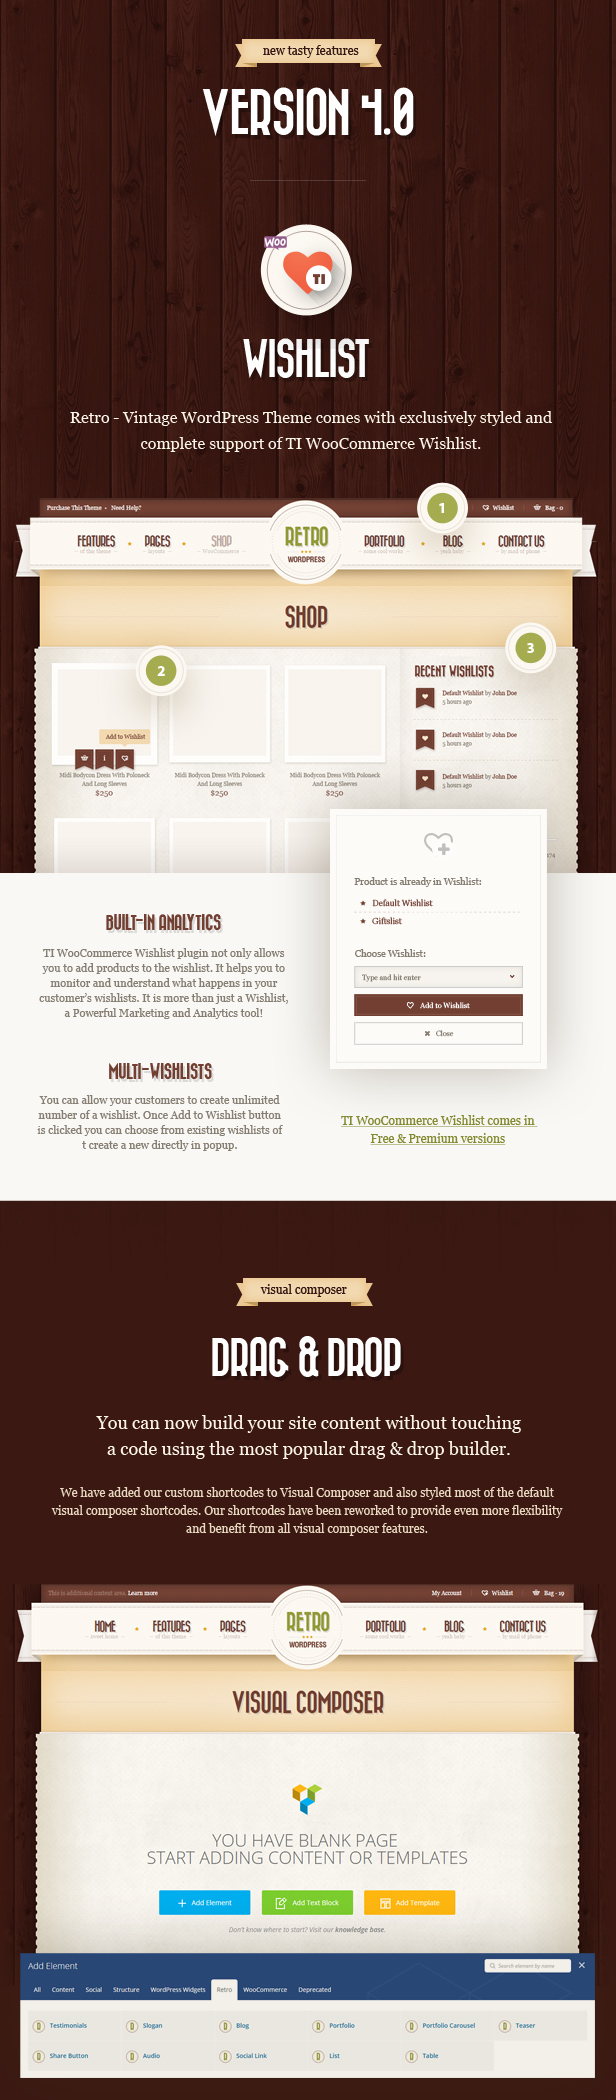 Retro - Vintage WordPress Theme - 2